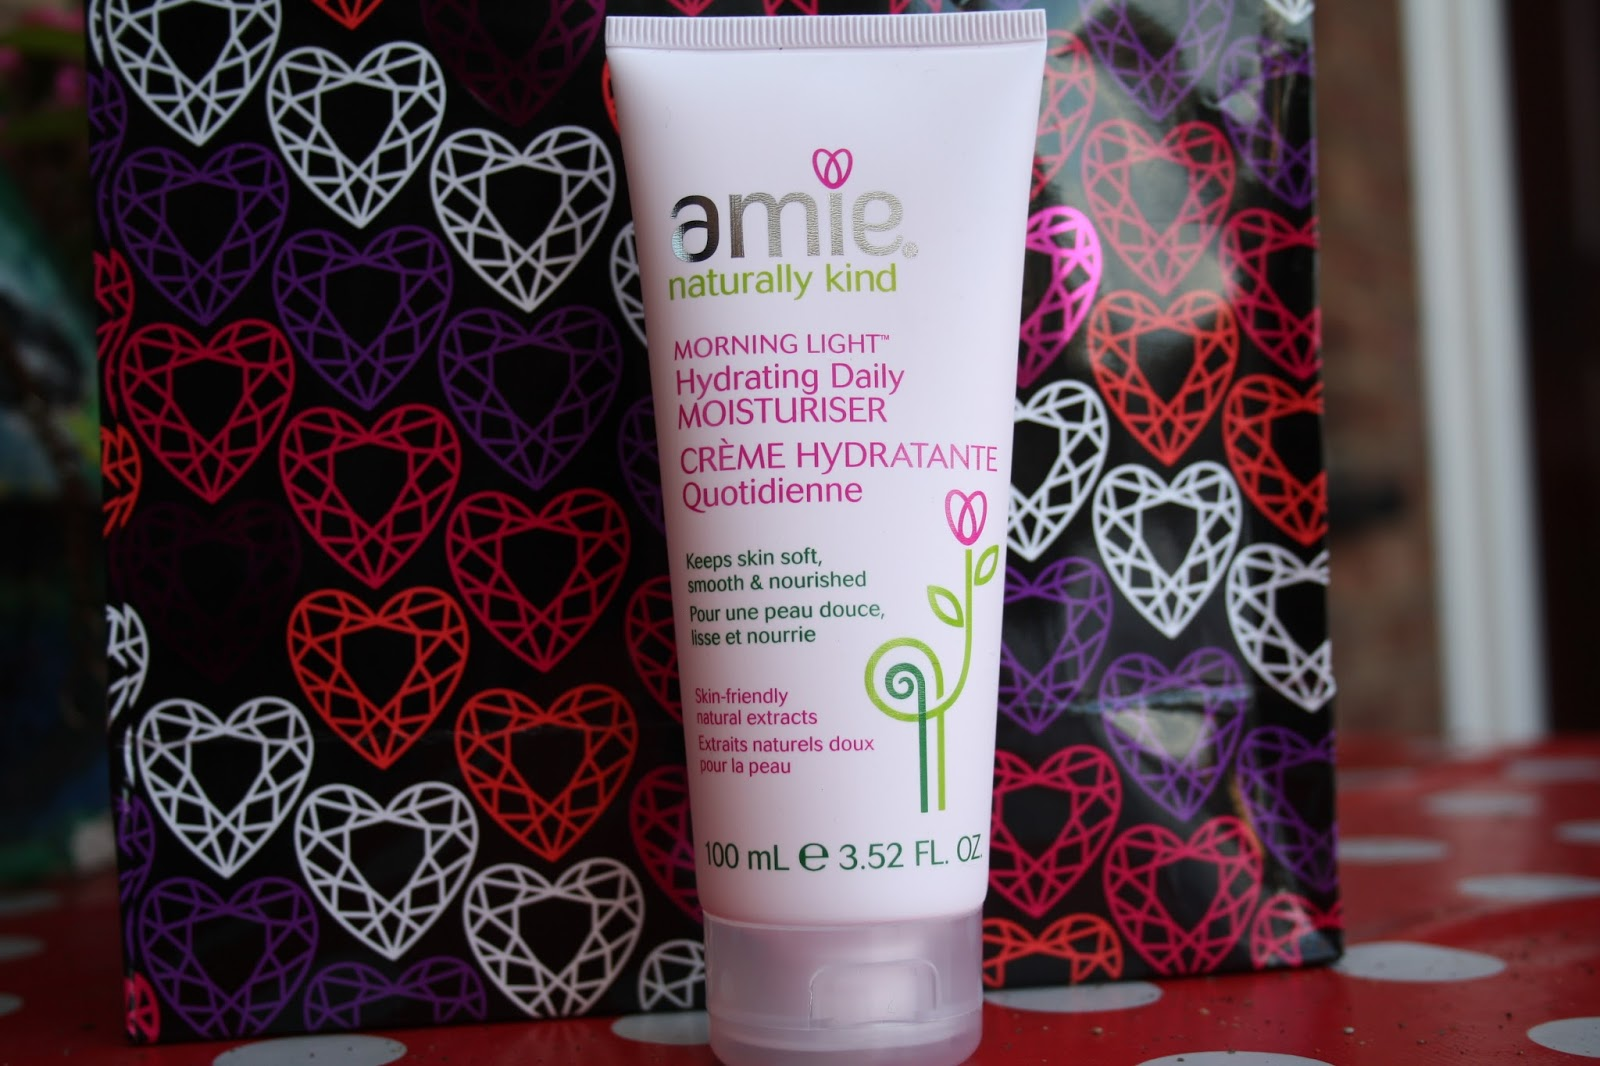 Amie Morning Light Hydrating Daily Moisturiser